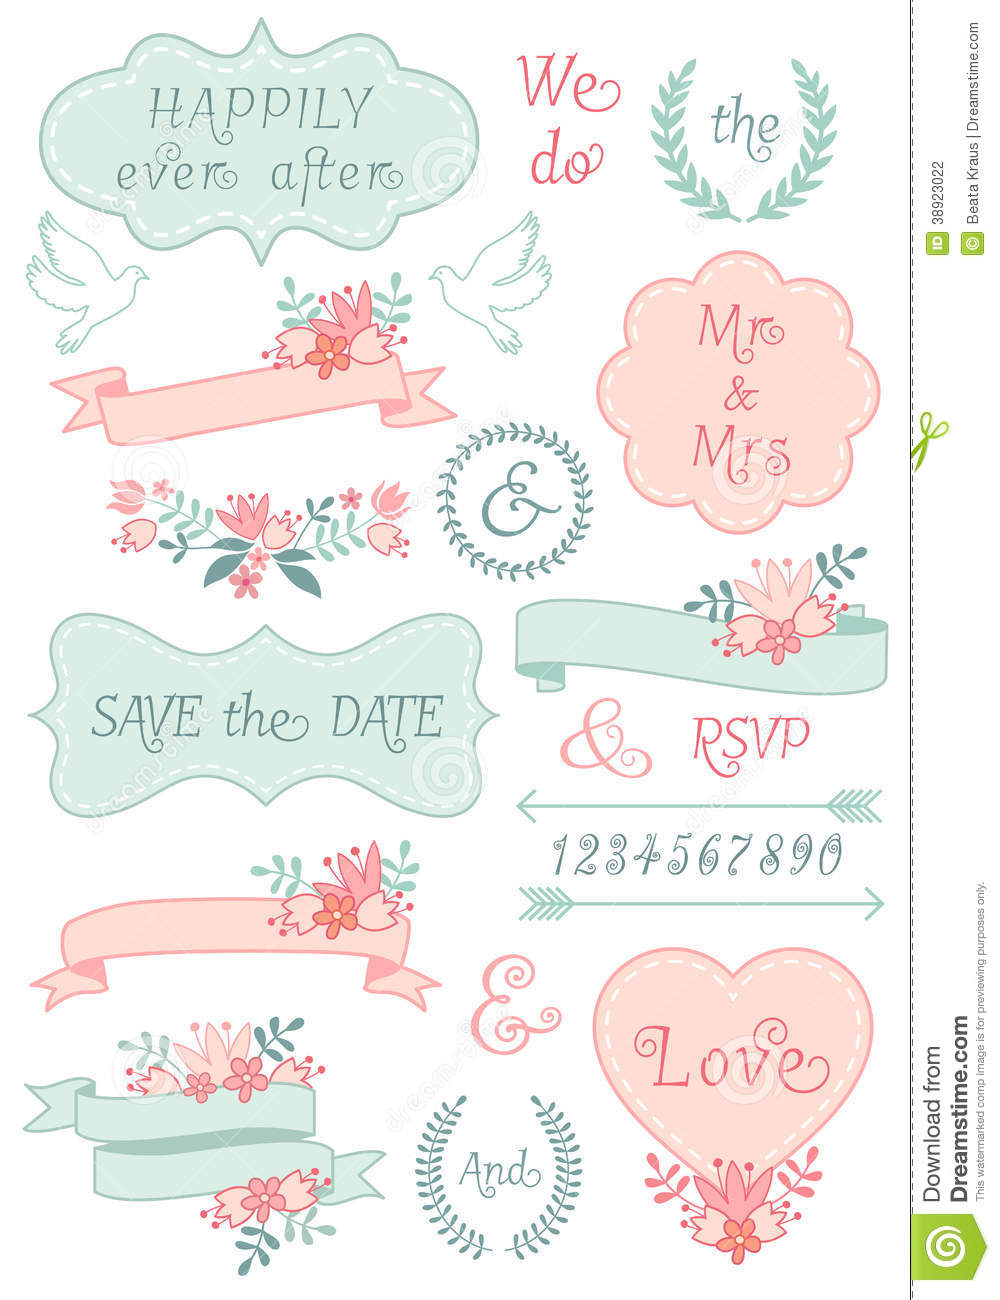 Vintage Wedding Frames And Ribbons, Vector Set Stock Vector - Image